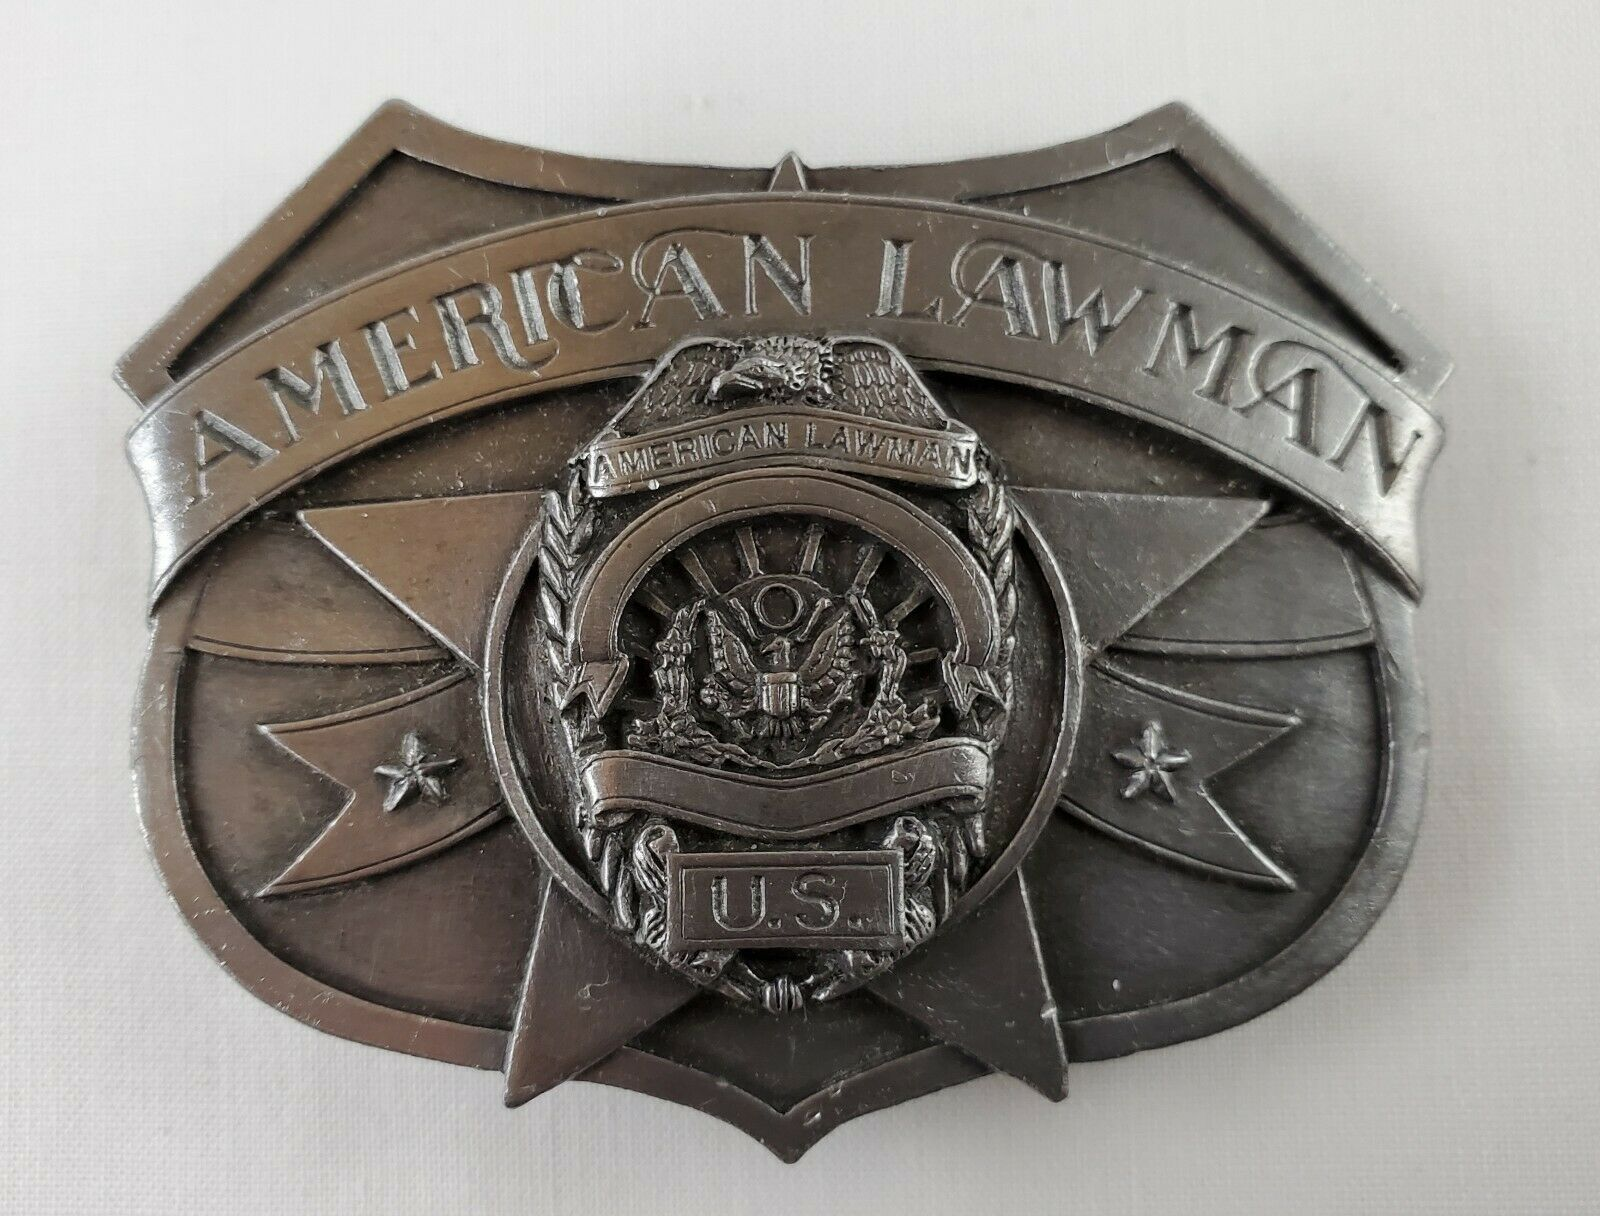 SiskiYou Buckle Co. American Lawman To Serve And Protect Belt Buckle 1986